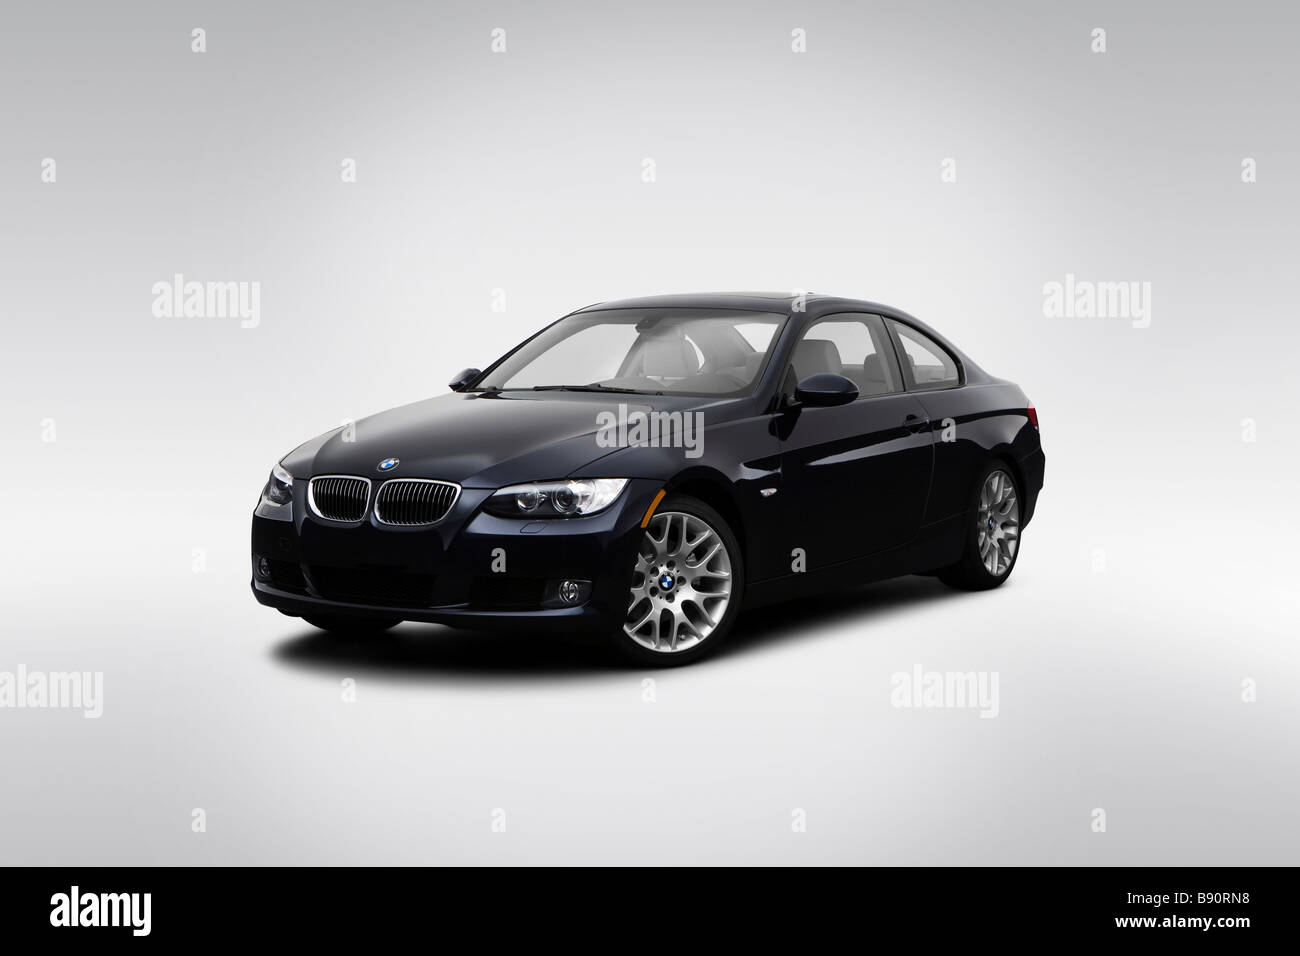 2009 Bmw 3 Series 328i In Blue Front Angle View Stock Photo